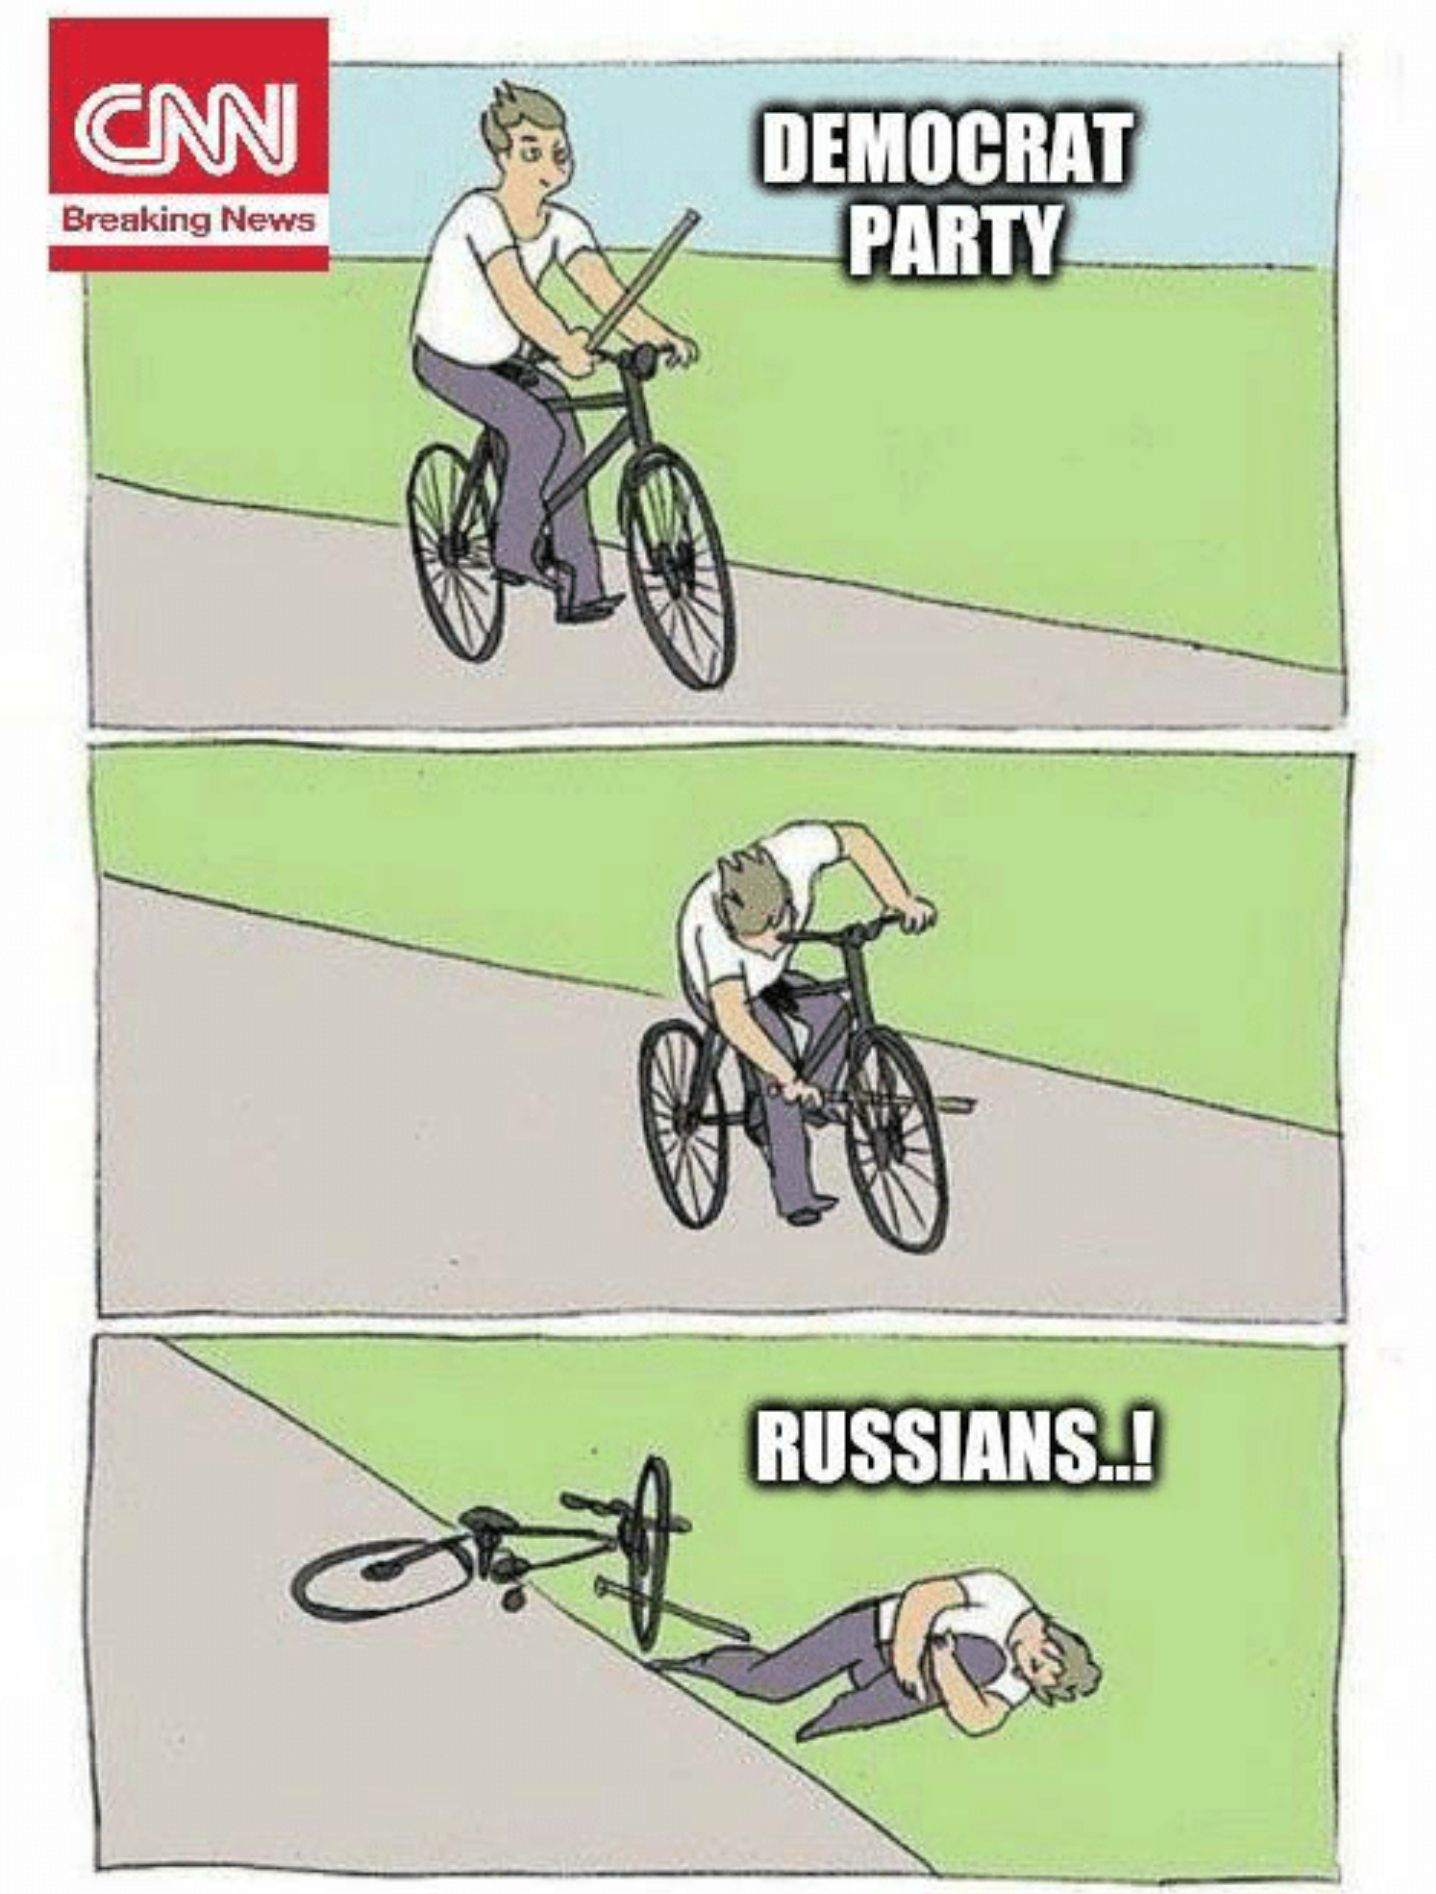 CNN Meme of Dems like kid ridding a bike putting a stick in his own spokes and then blaming the Russians!